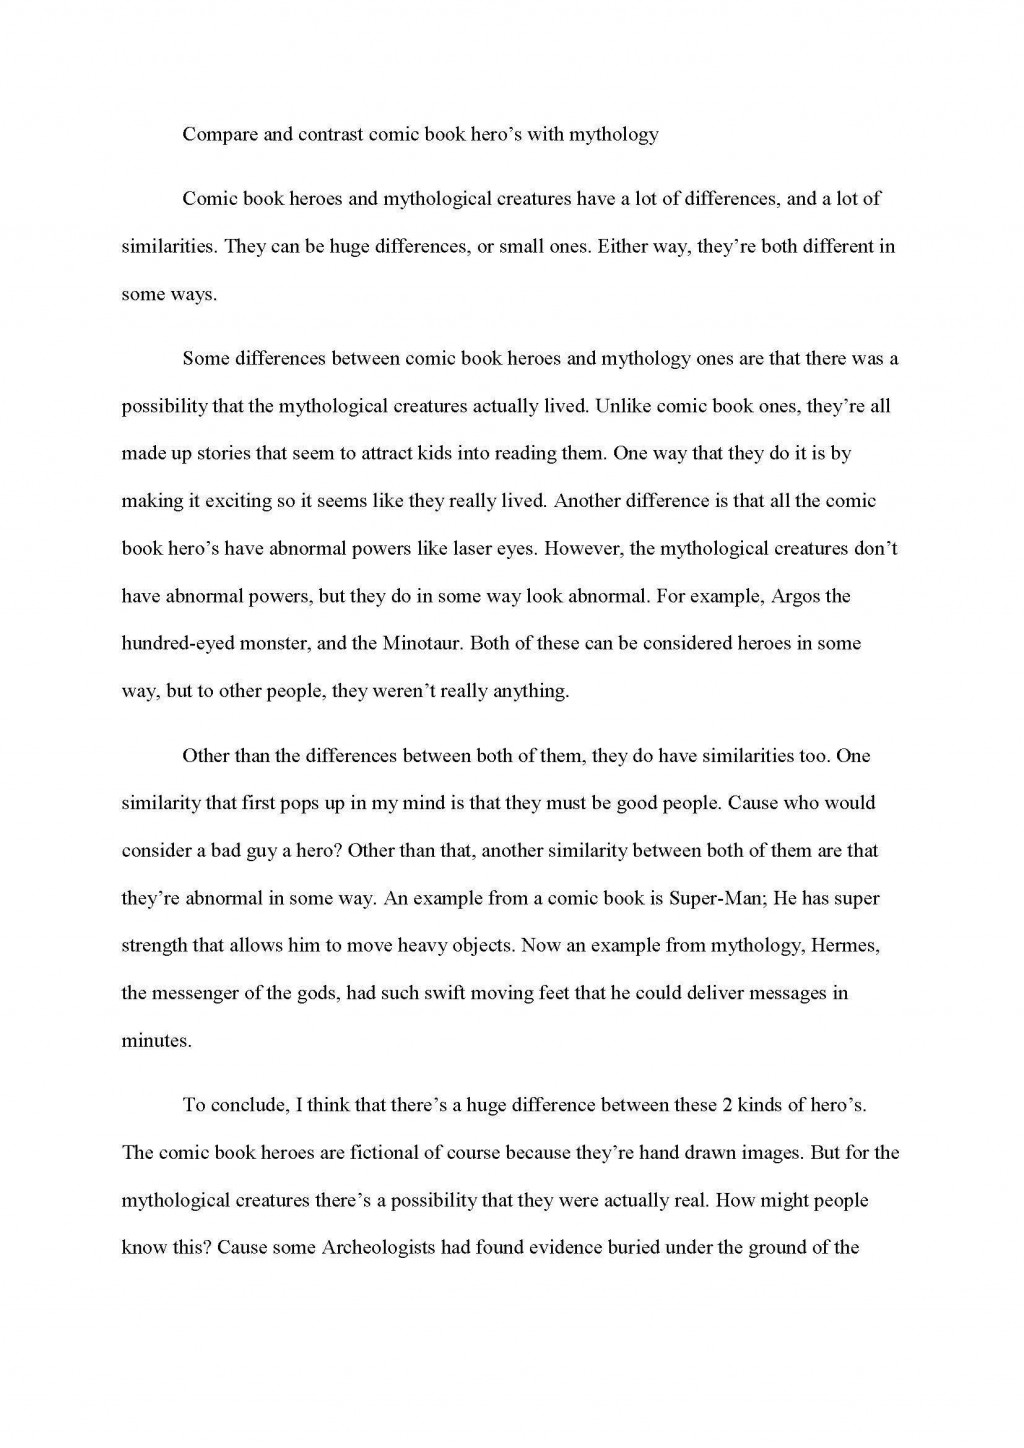 010 Compare And Contrast Essay Sample Example Sensational Themes For 1984 Ielts The Great Gatsby Large